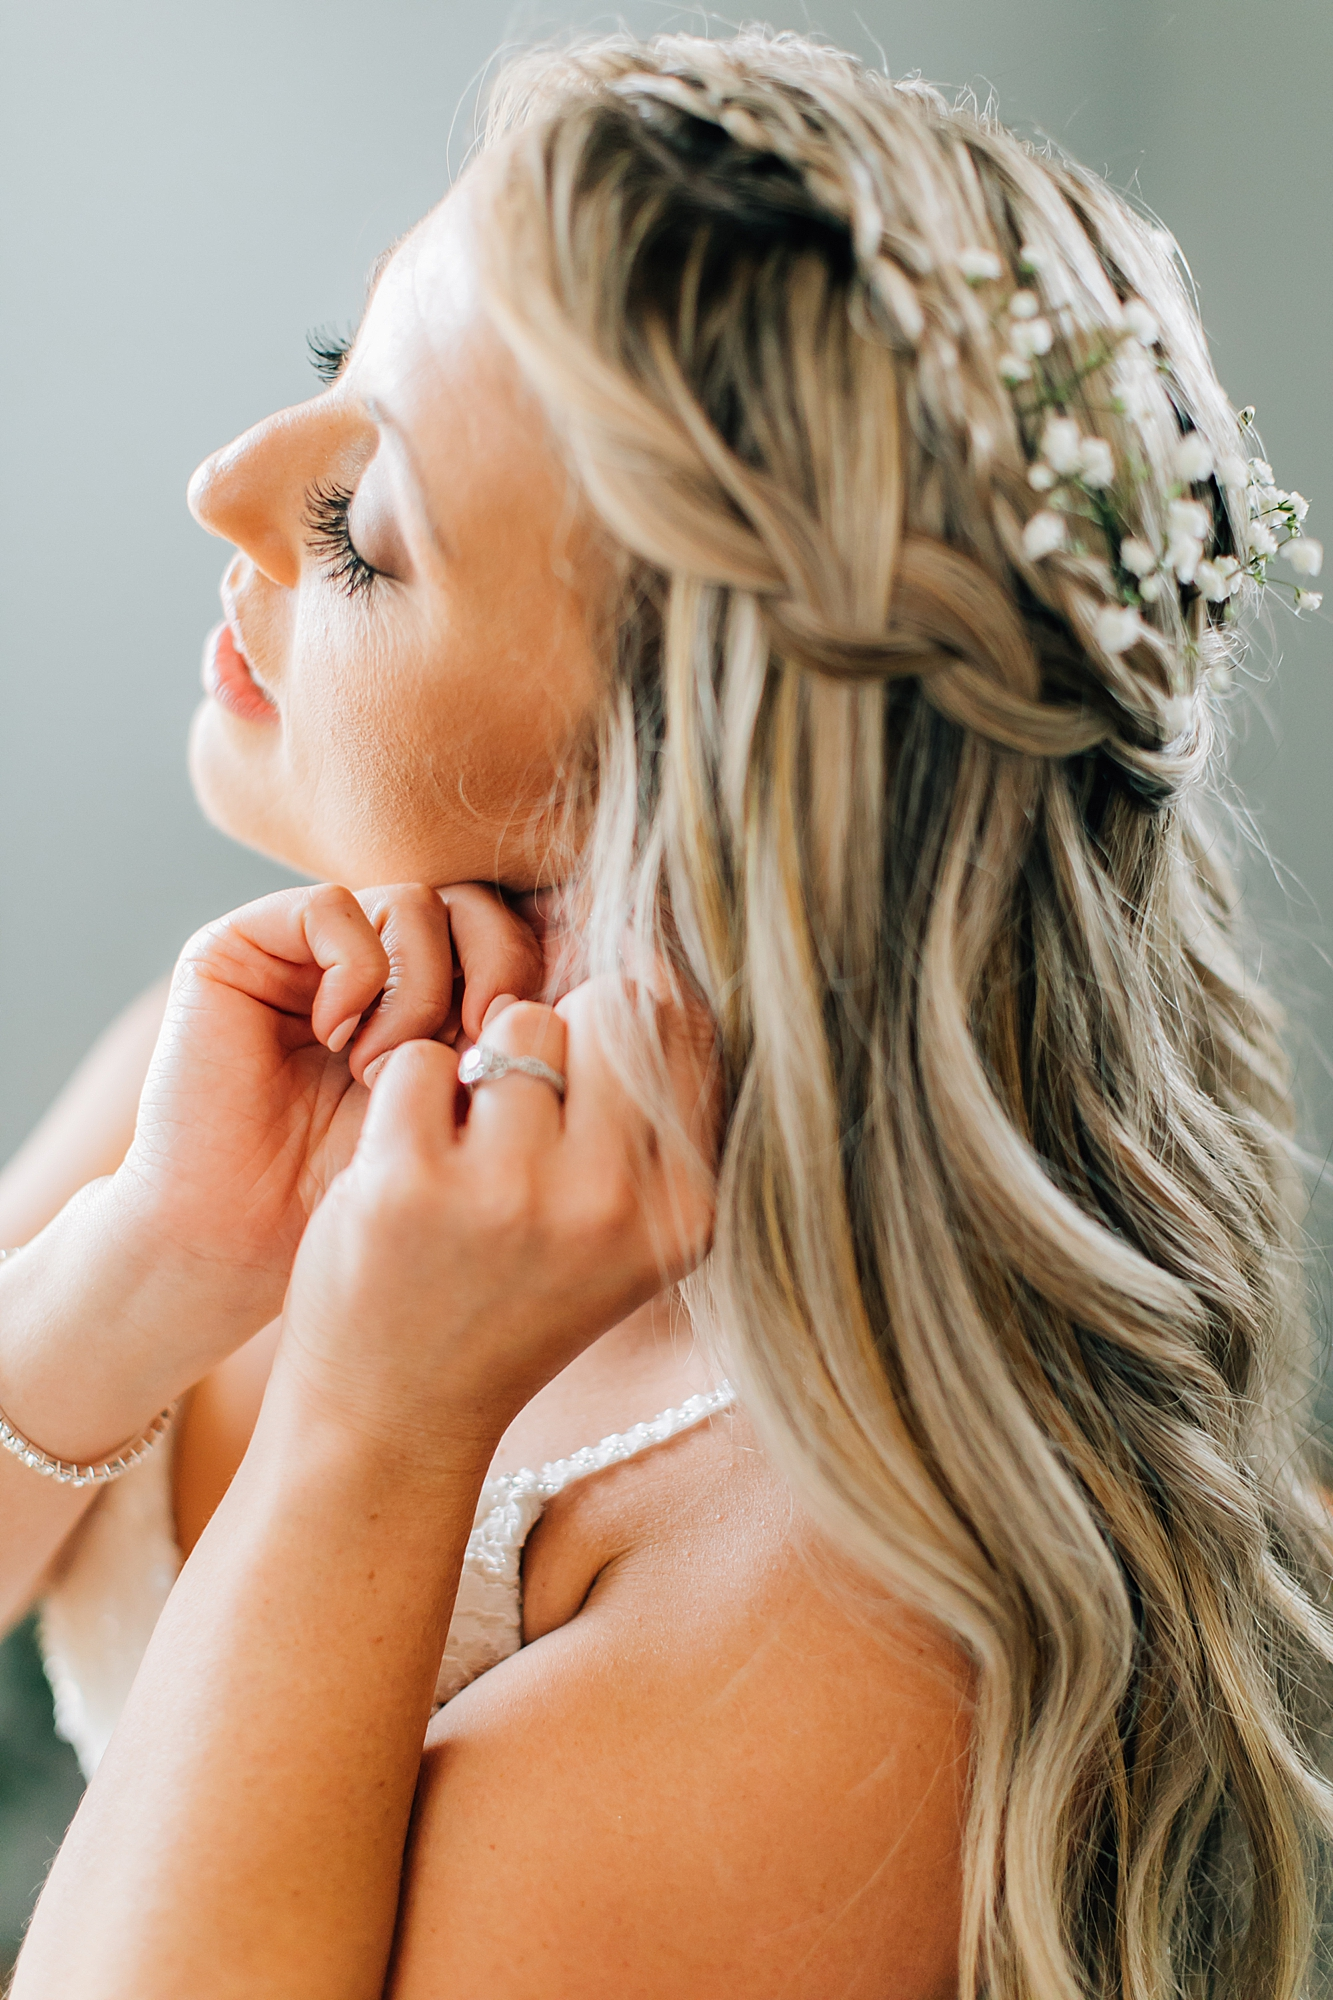 Candid and Genuine Fairmount Waterworks Philadelphia Wedding Photography by Magdalena Studios 0011 2